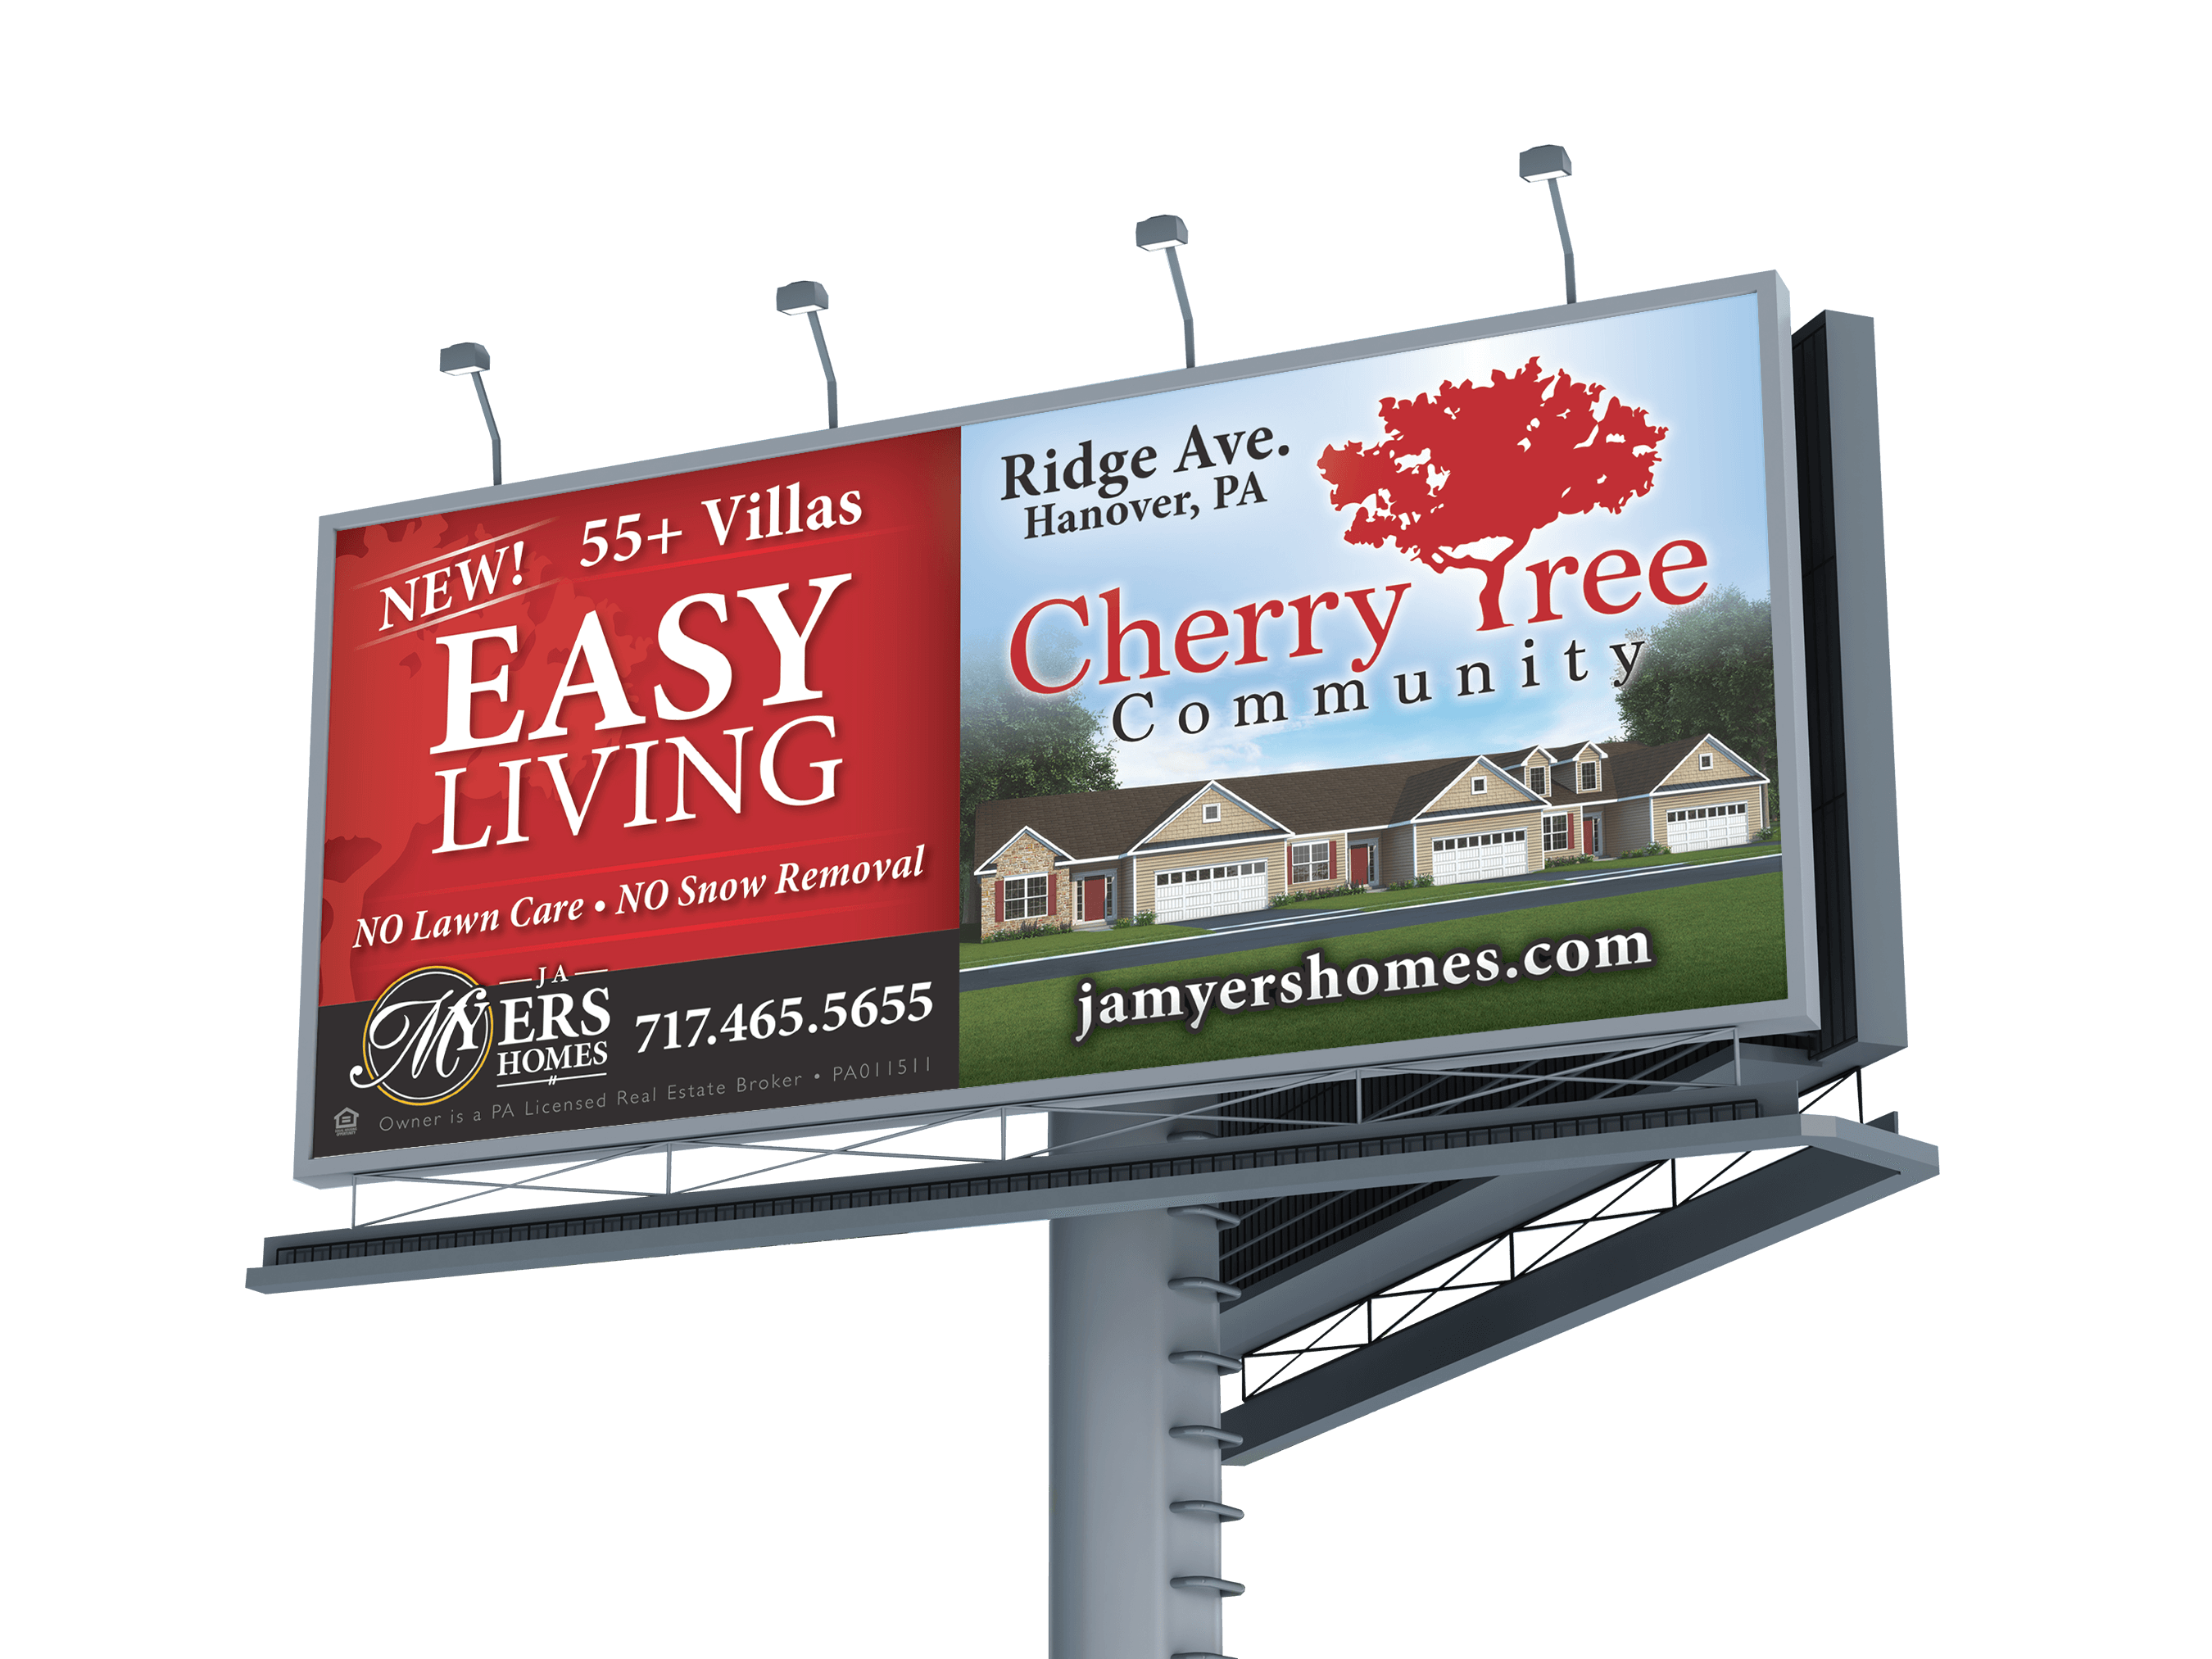 Billboard mockup clipart png freeuse library Billboard mockup psd clipart images gallery for free download ... png freeuse library